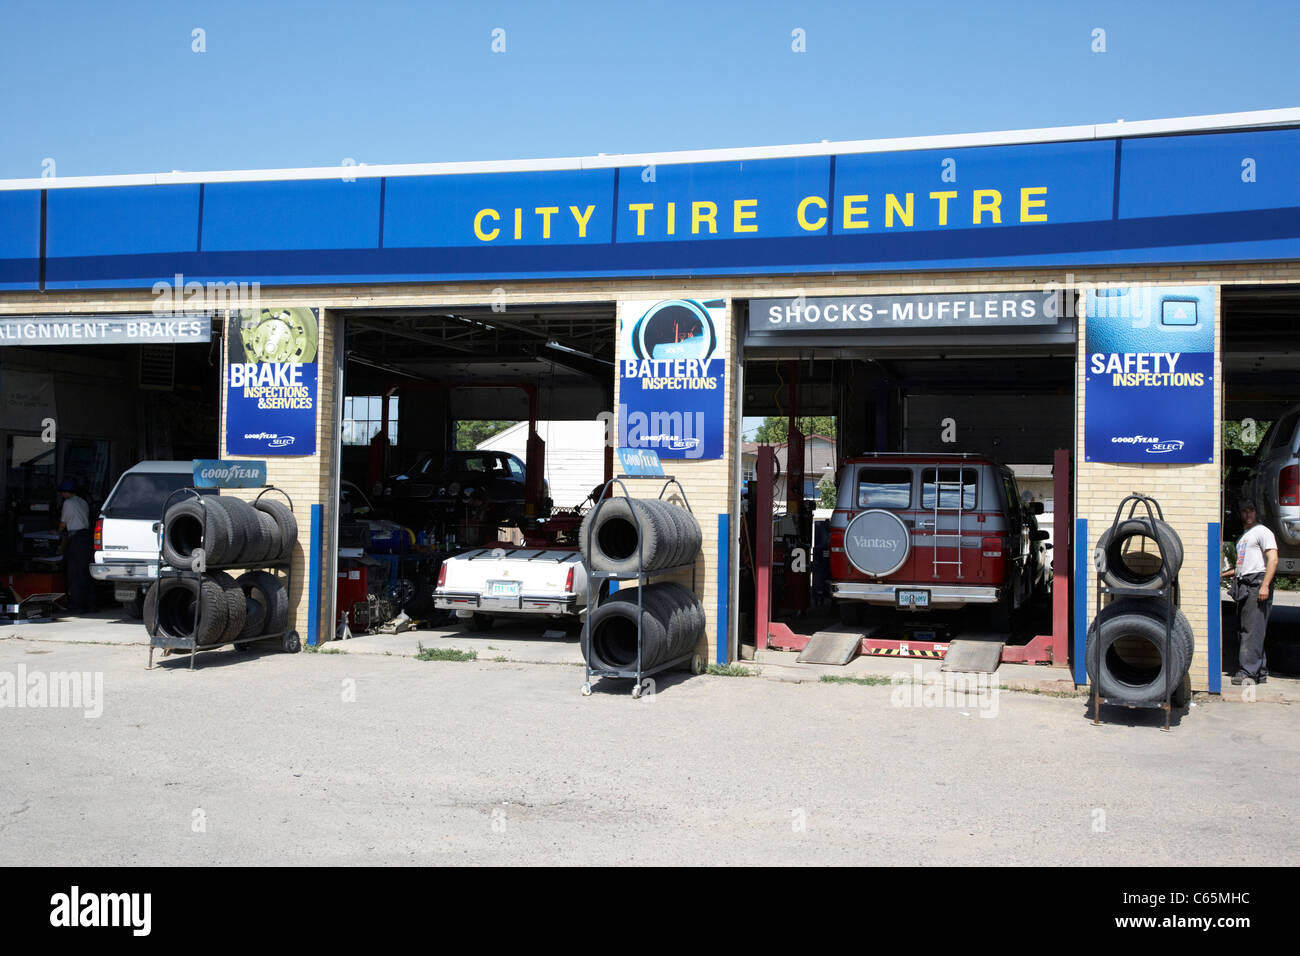 city tire centre drive in car servicing Saskatoon Saskatchewan Canada - Stock Image